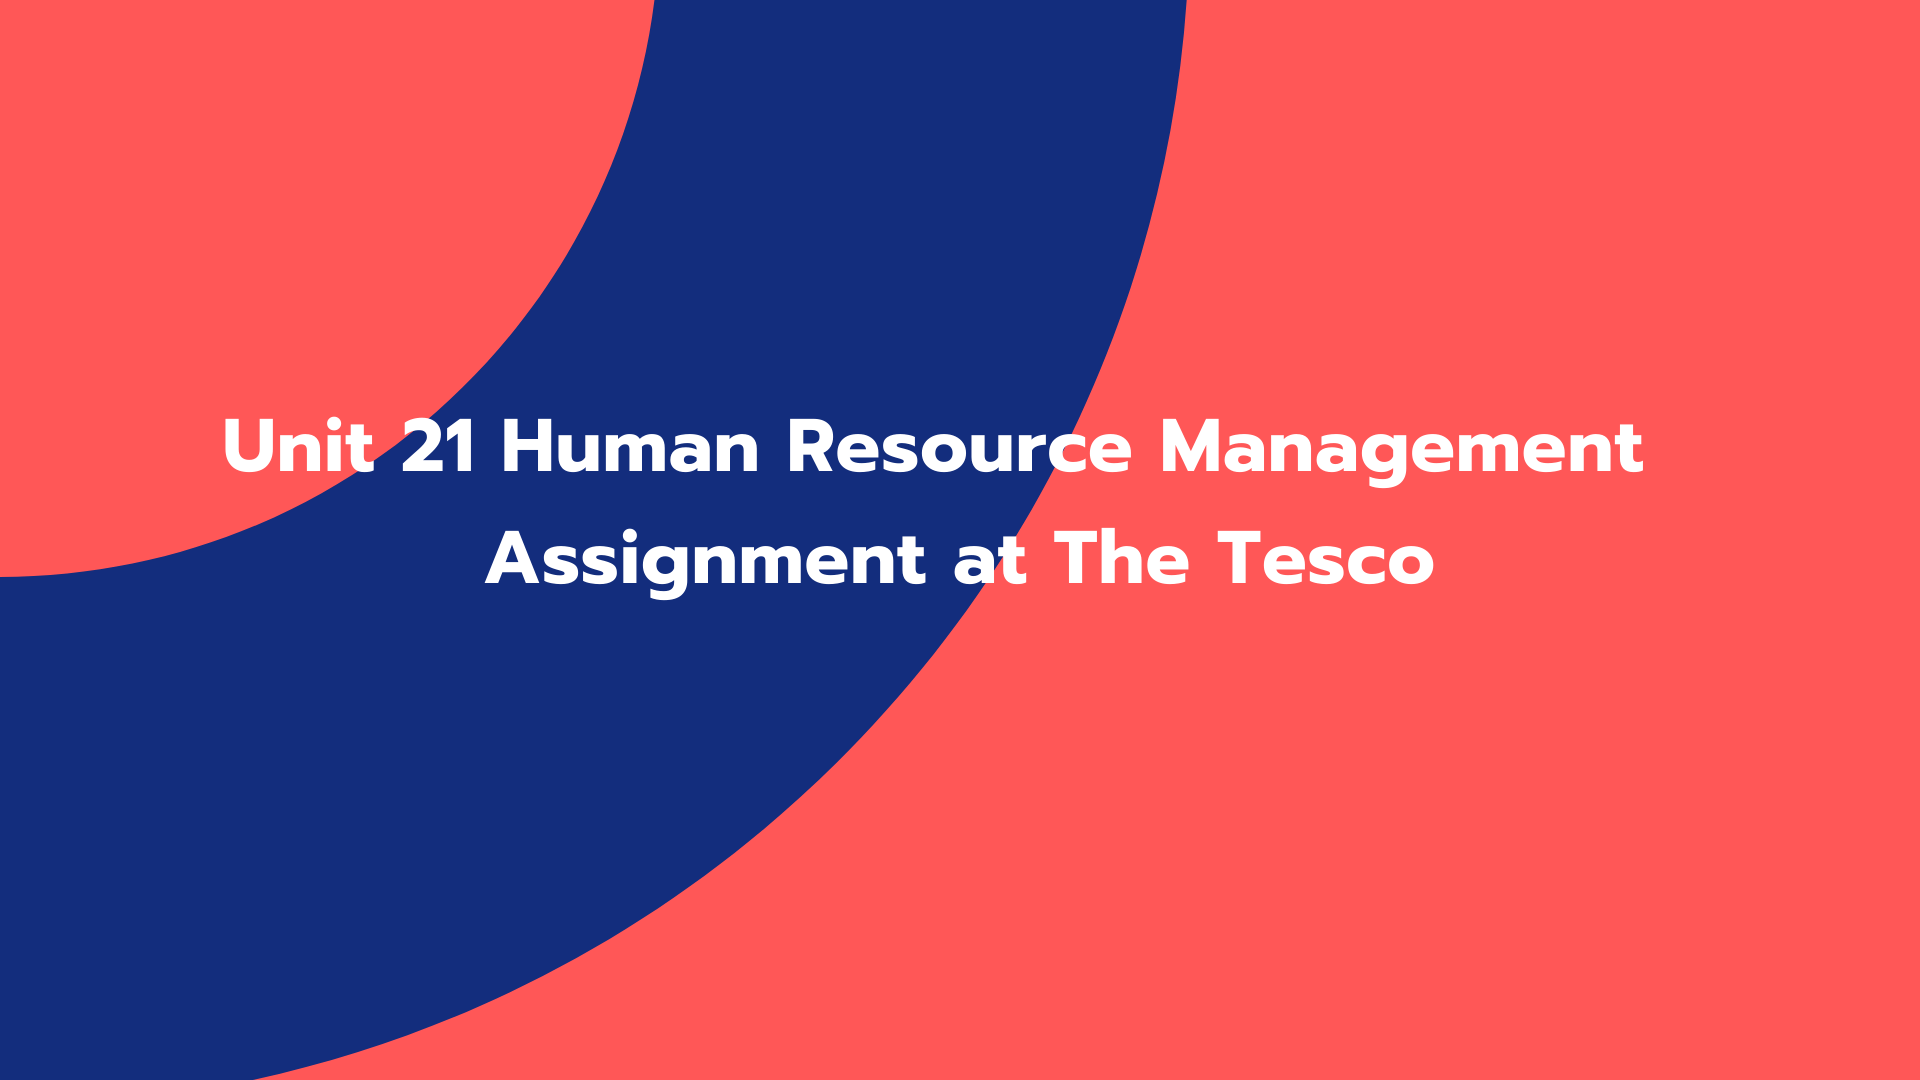 Unit 21 Human Resource Management Assignment at The Tesco